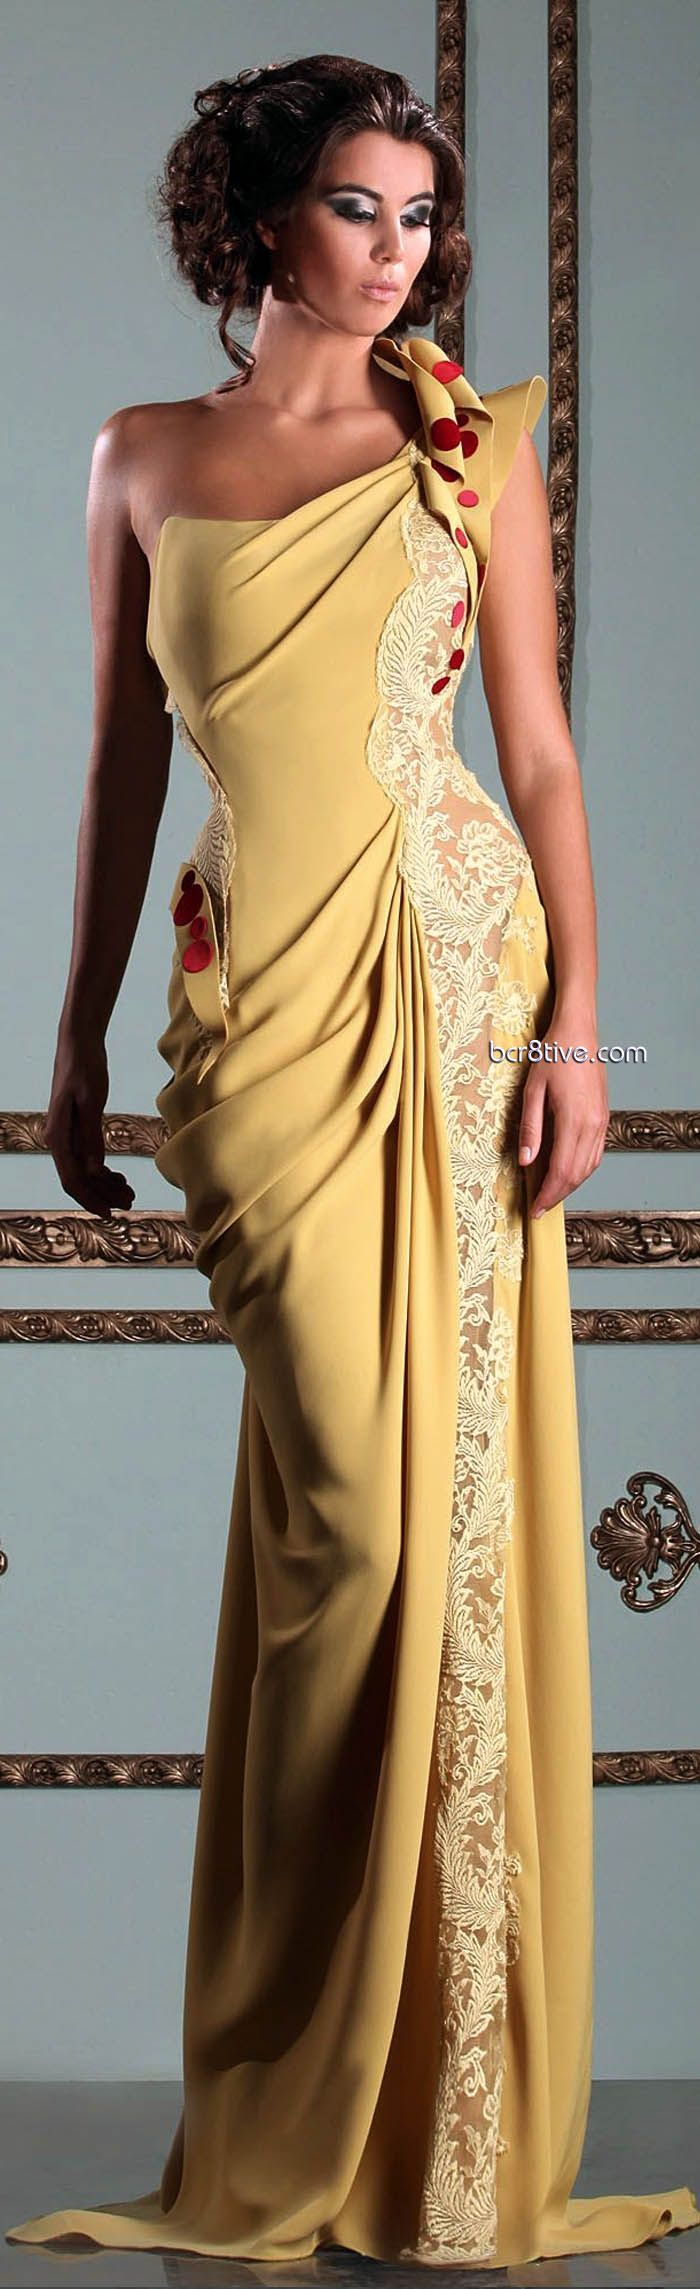 Evening gown, couture, evening dresses, formal and elegant Mireille Dagher Spring Summer 2013 Ready to Wear